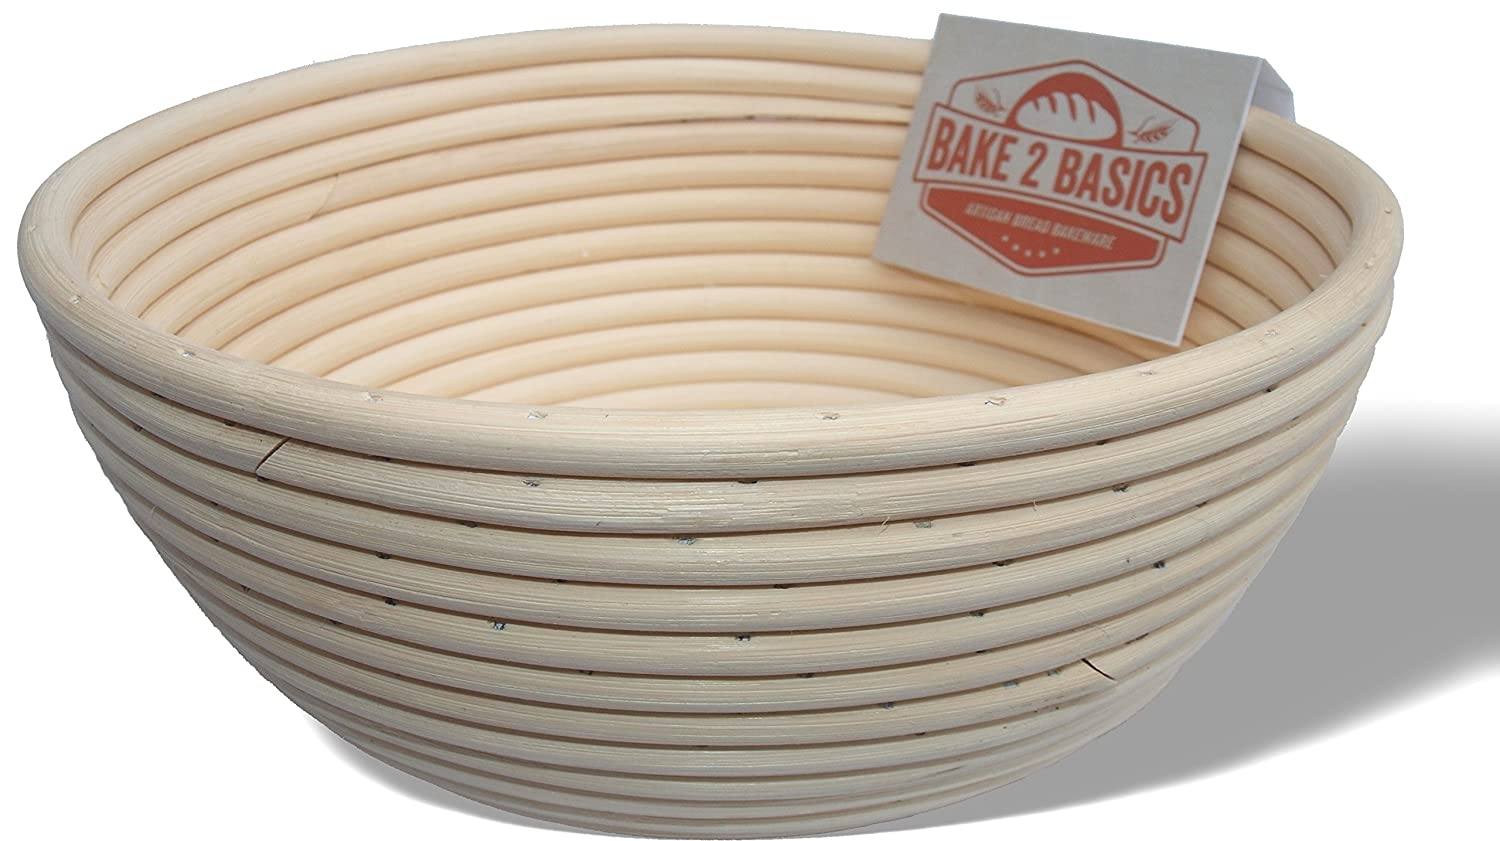 Banneton Bread Proofing Basket - (Brotform) - Bake Beautiful Artisan Bread In This 9 Inch Rattan Basket Bake2Basics SYNCHKG101052